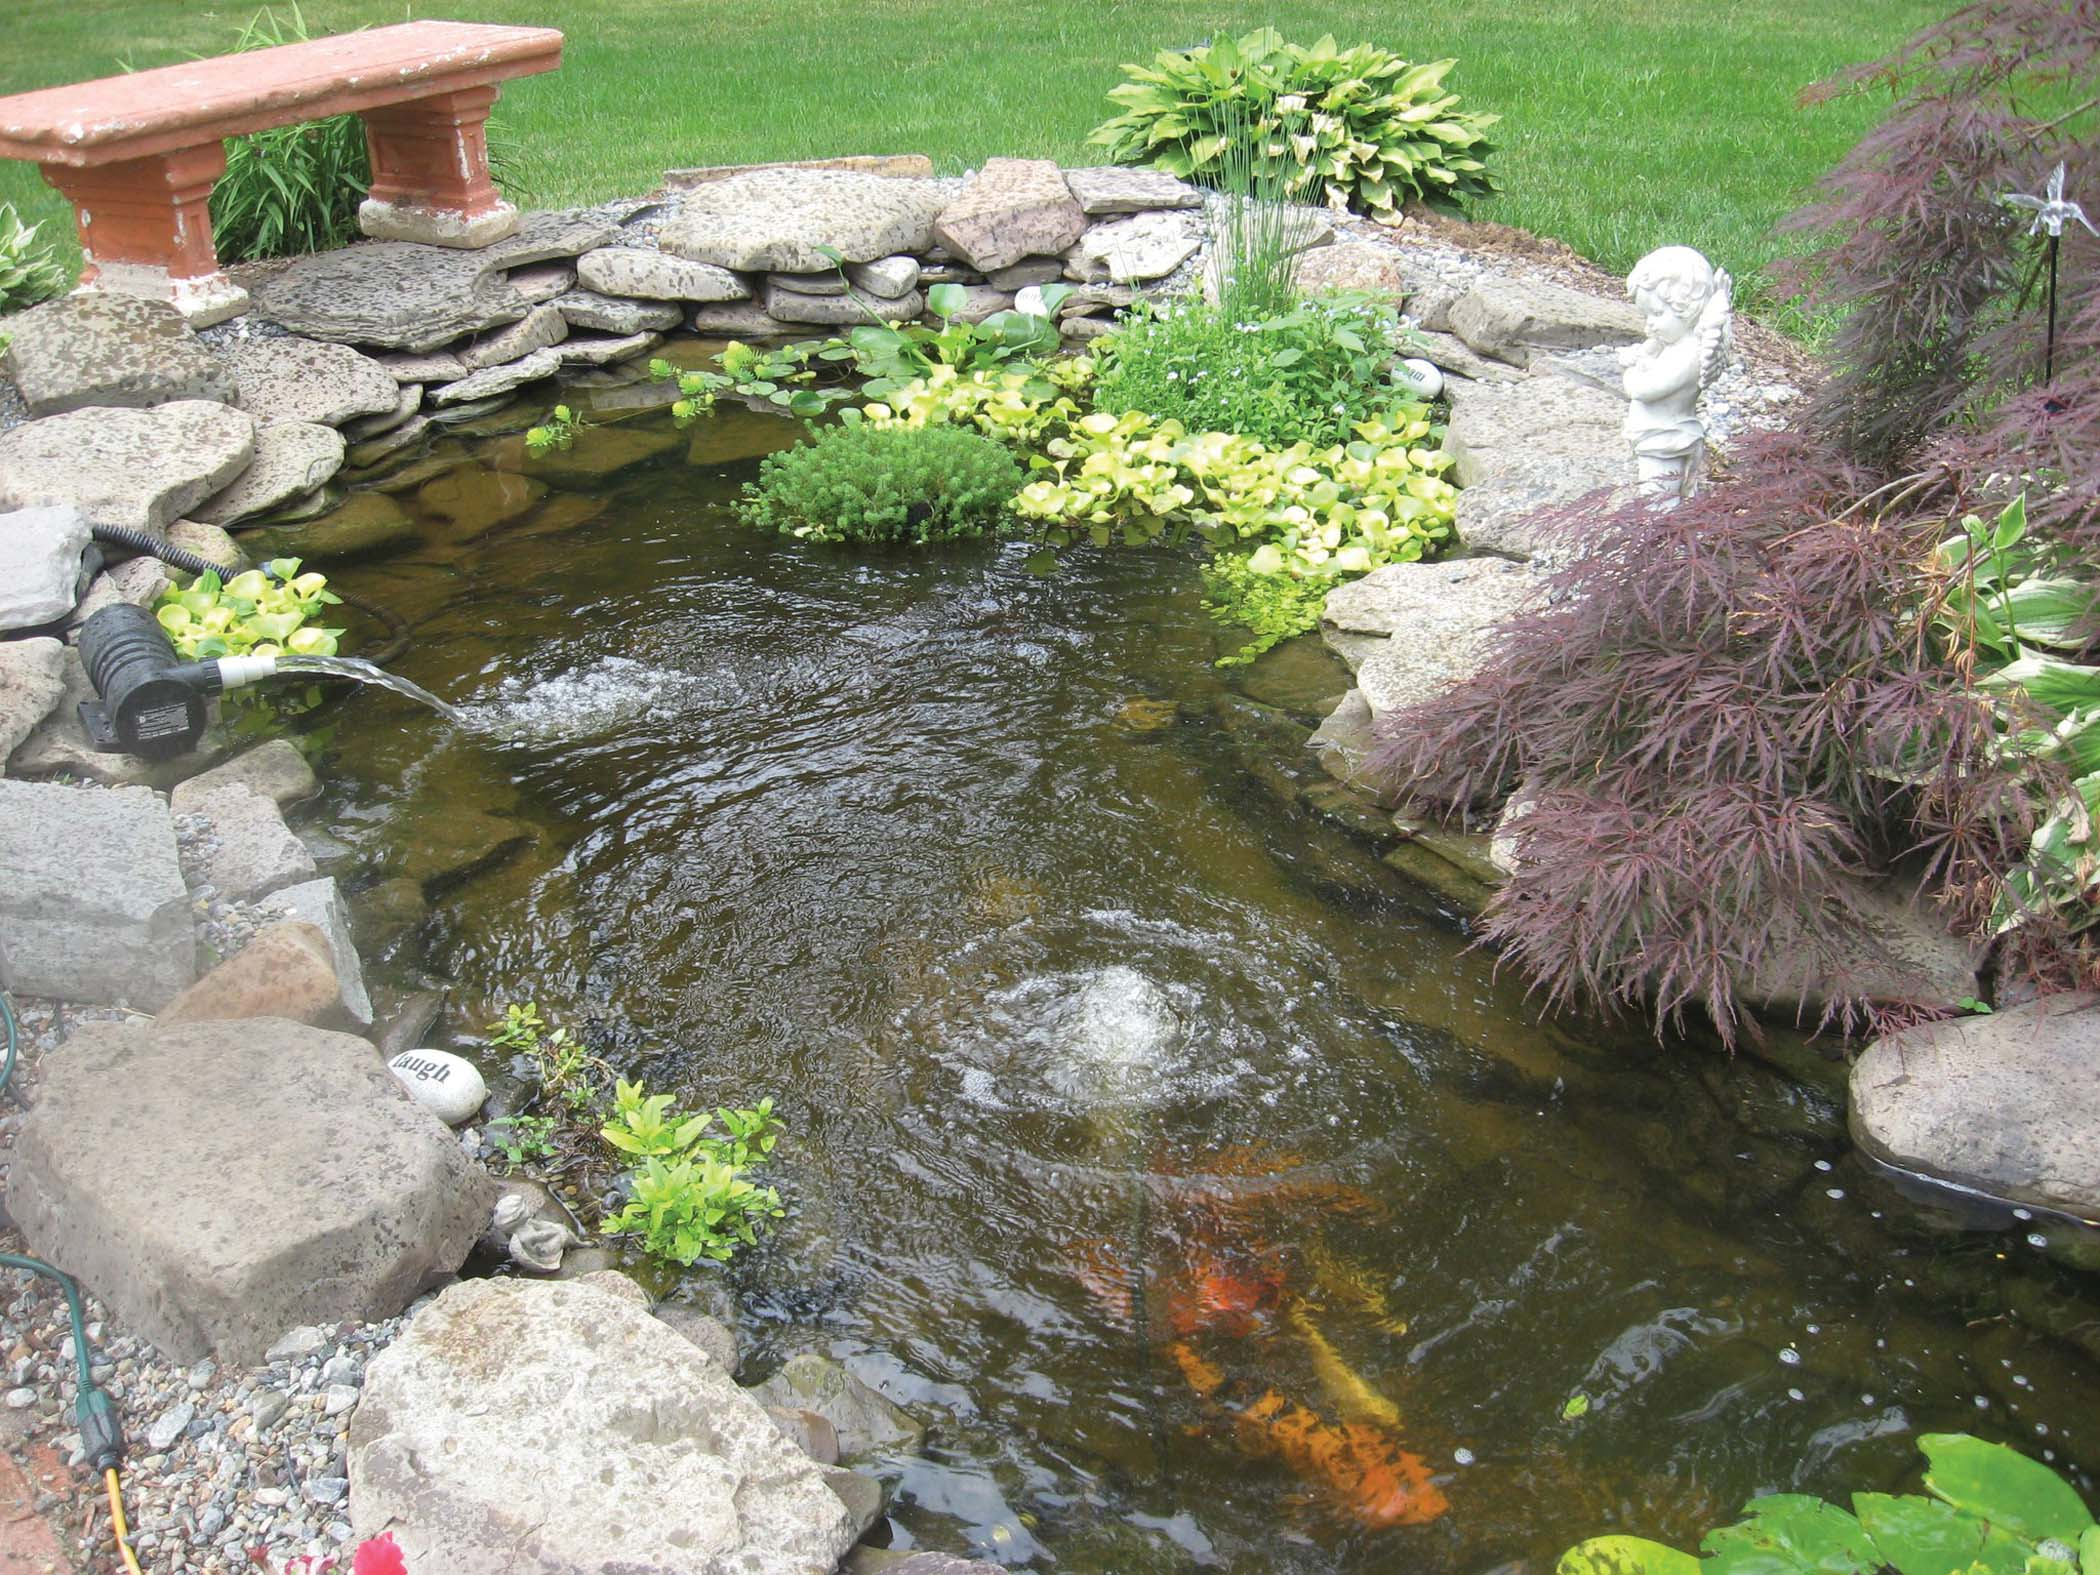 Koi pond kits and also miniature pond kits and also garden pond cleaning and also diy pond kit and also cheap garden ponds